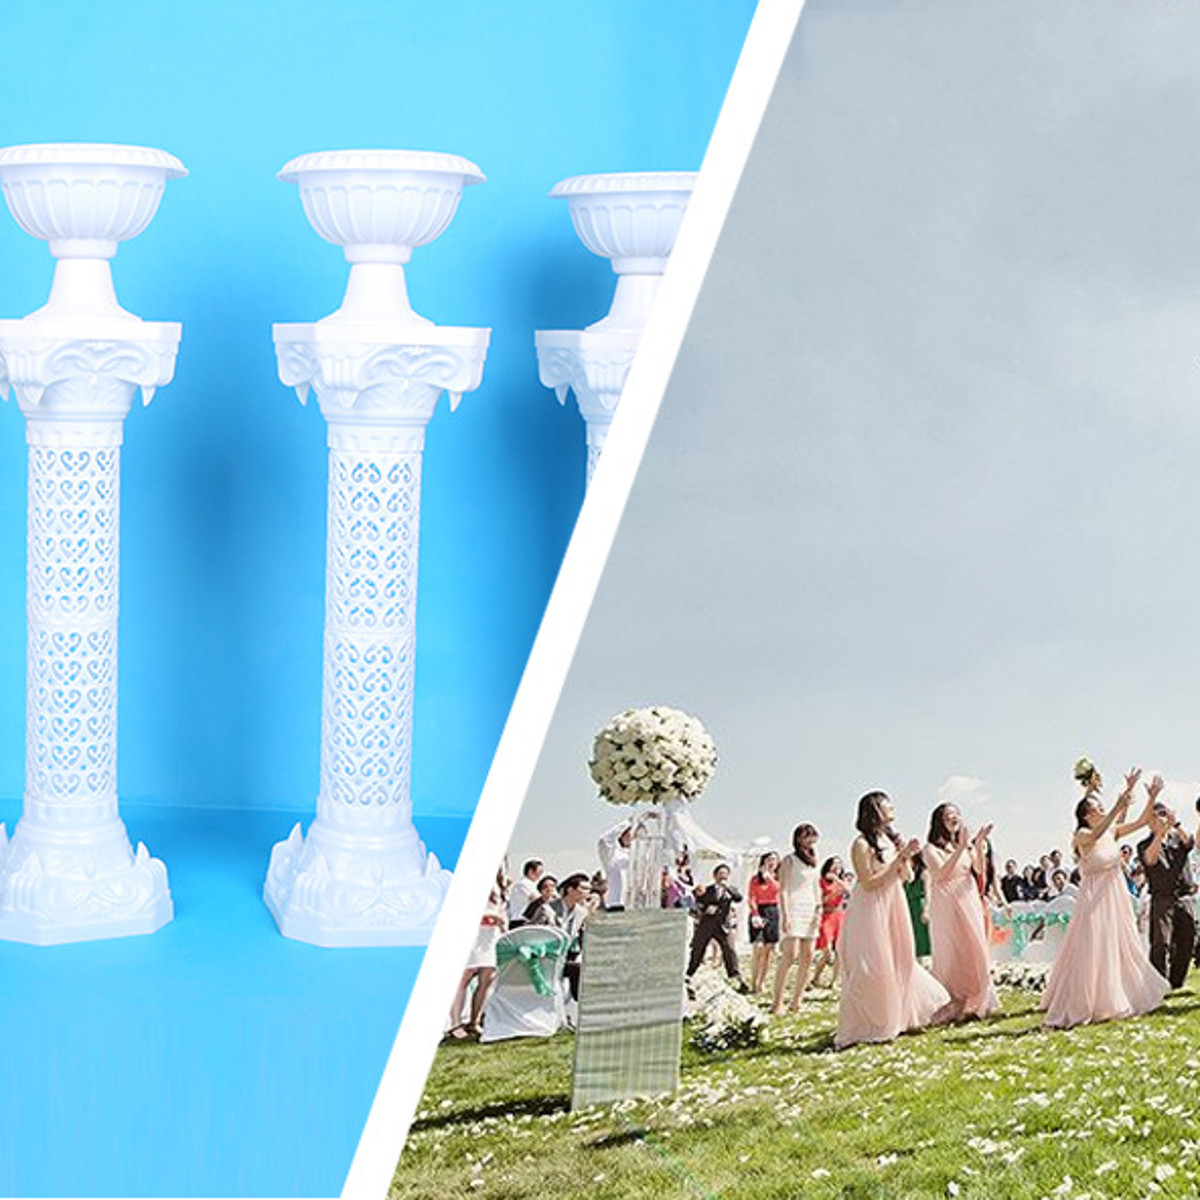 88CM Roman Pillars Column Pedestal Photography Props Plastic Wedding Party Decor Supplies